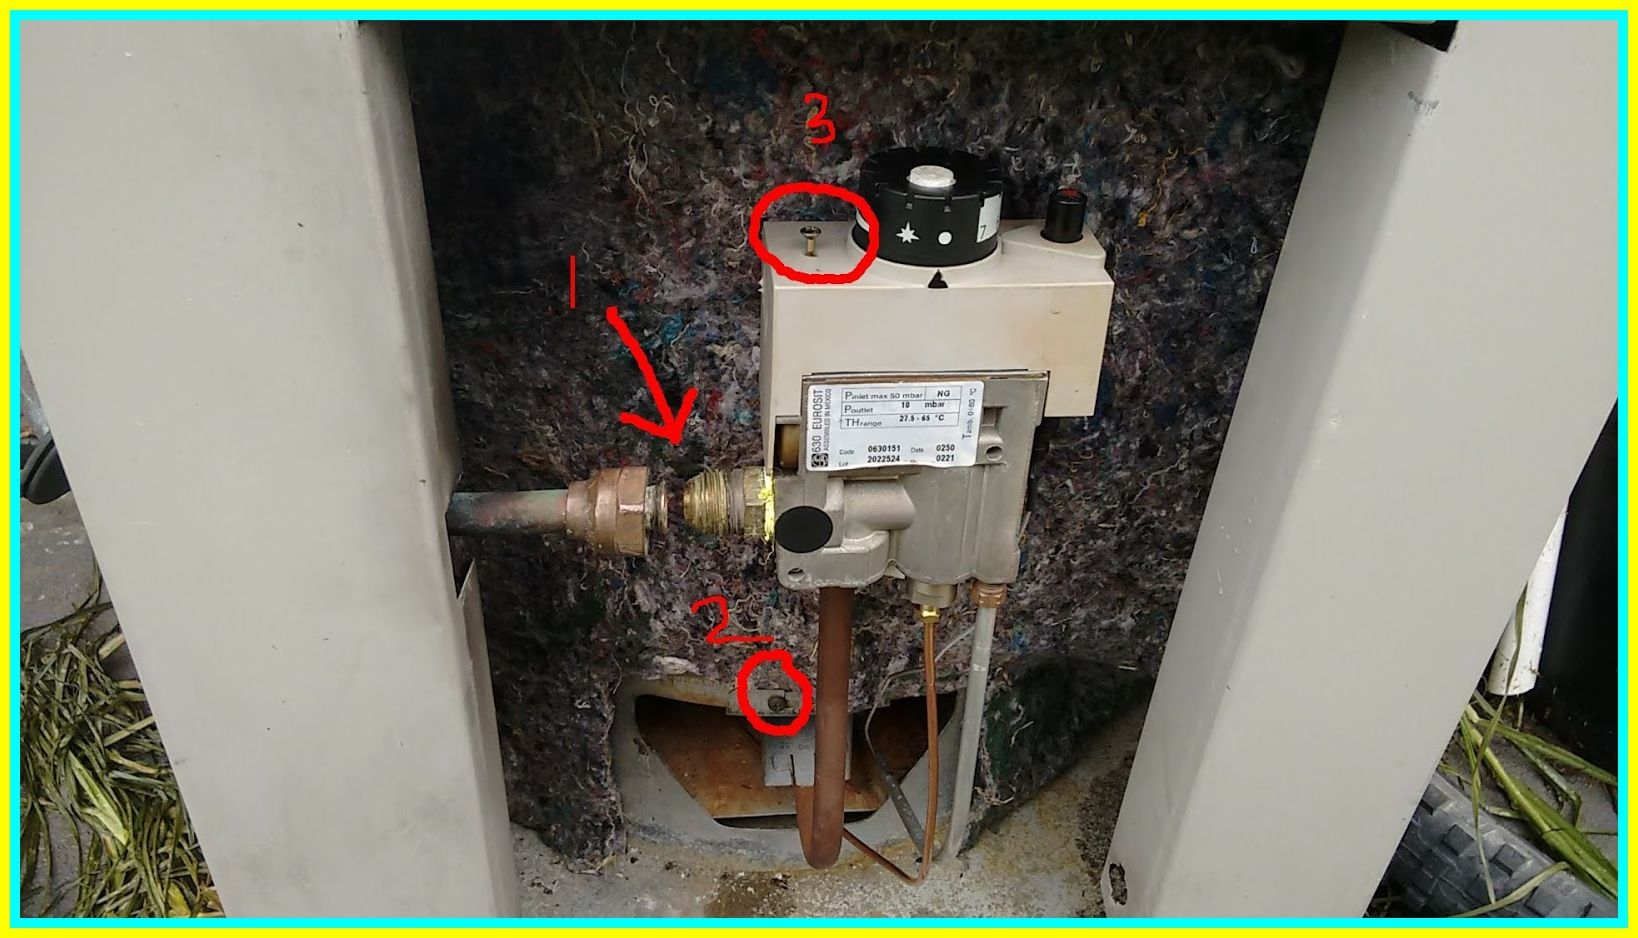 107 reference of pilot light water heater not lighting in